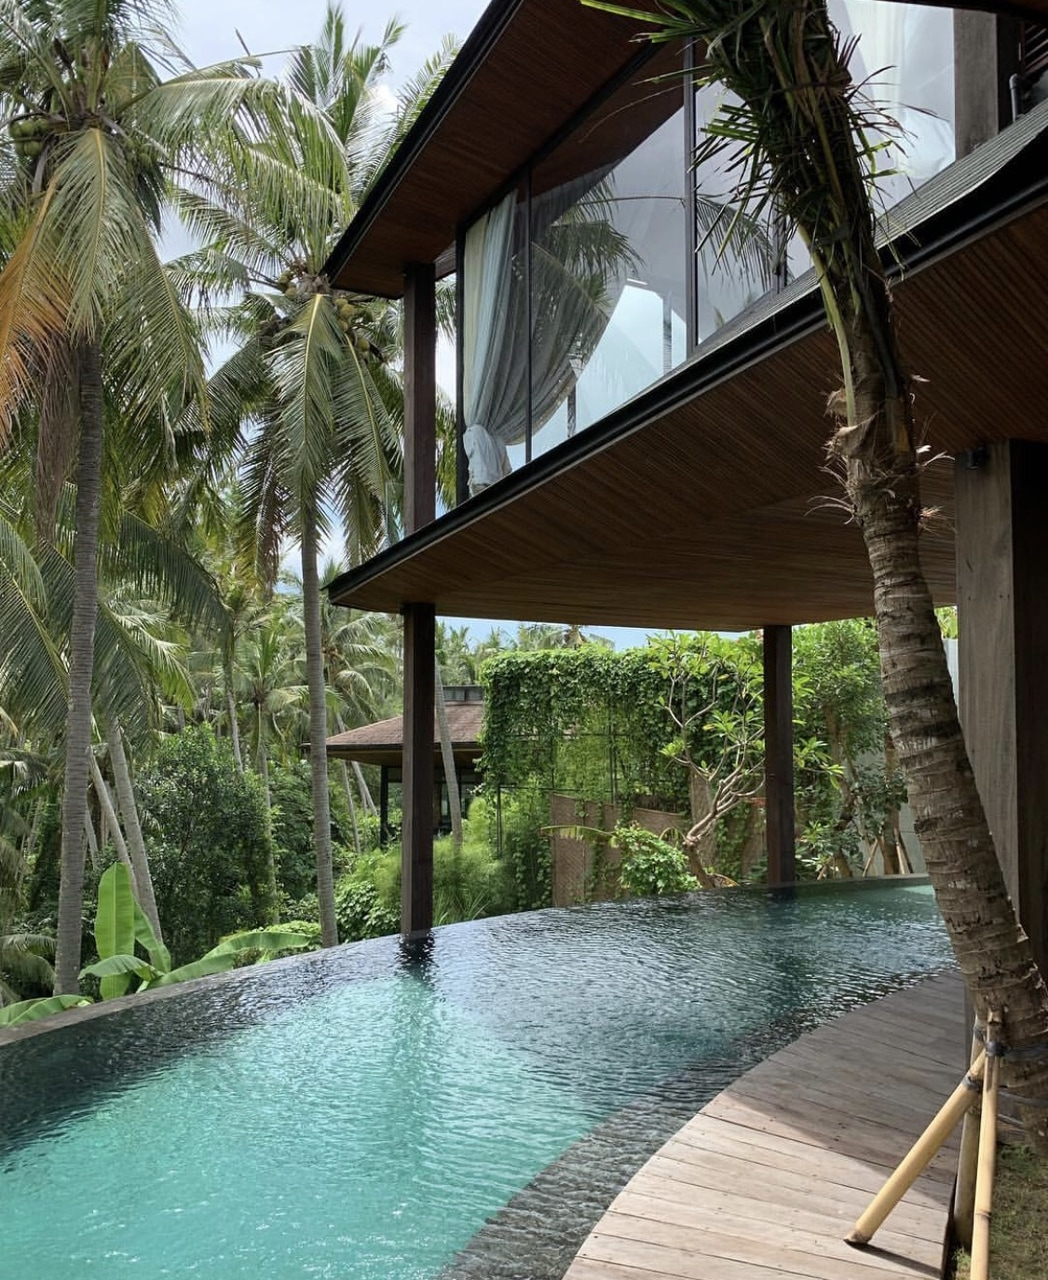 bali, Dream, and house image